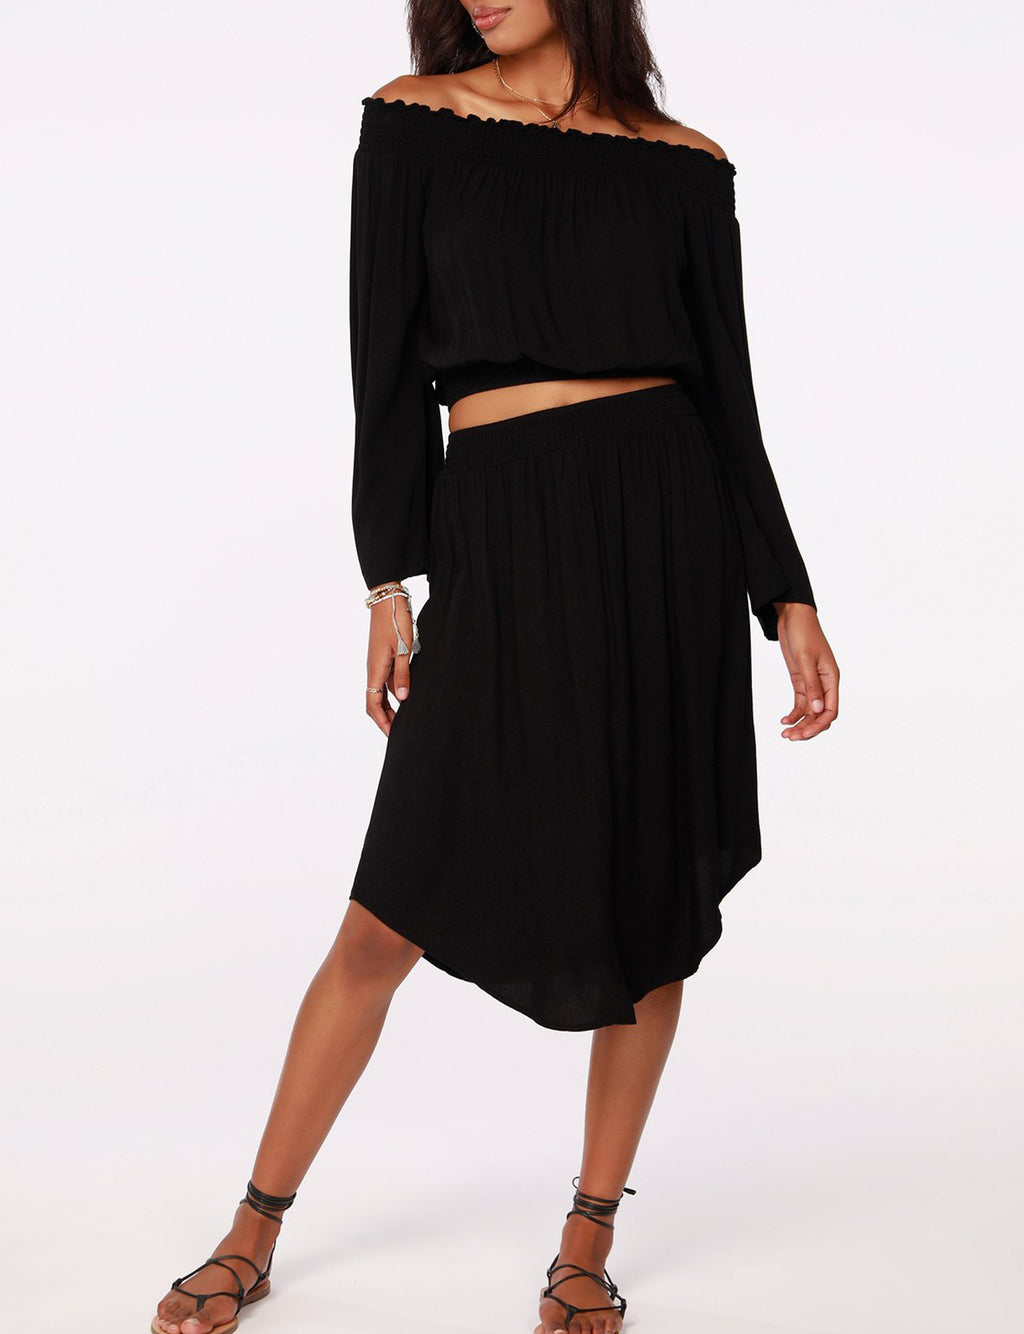 Smocked Waist Skirt in Black